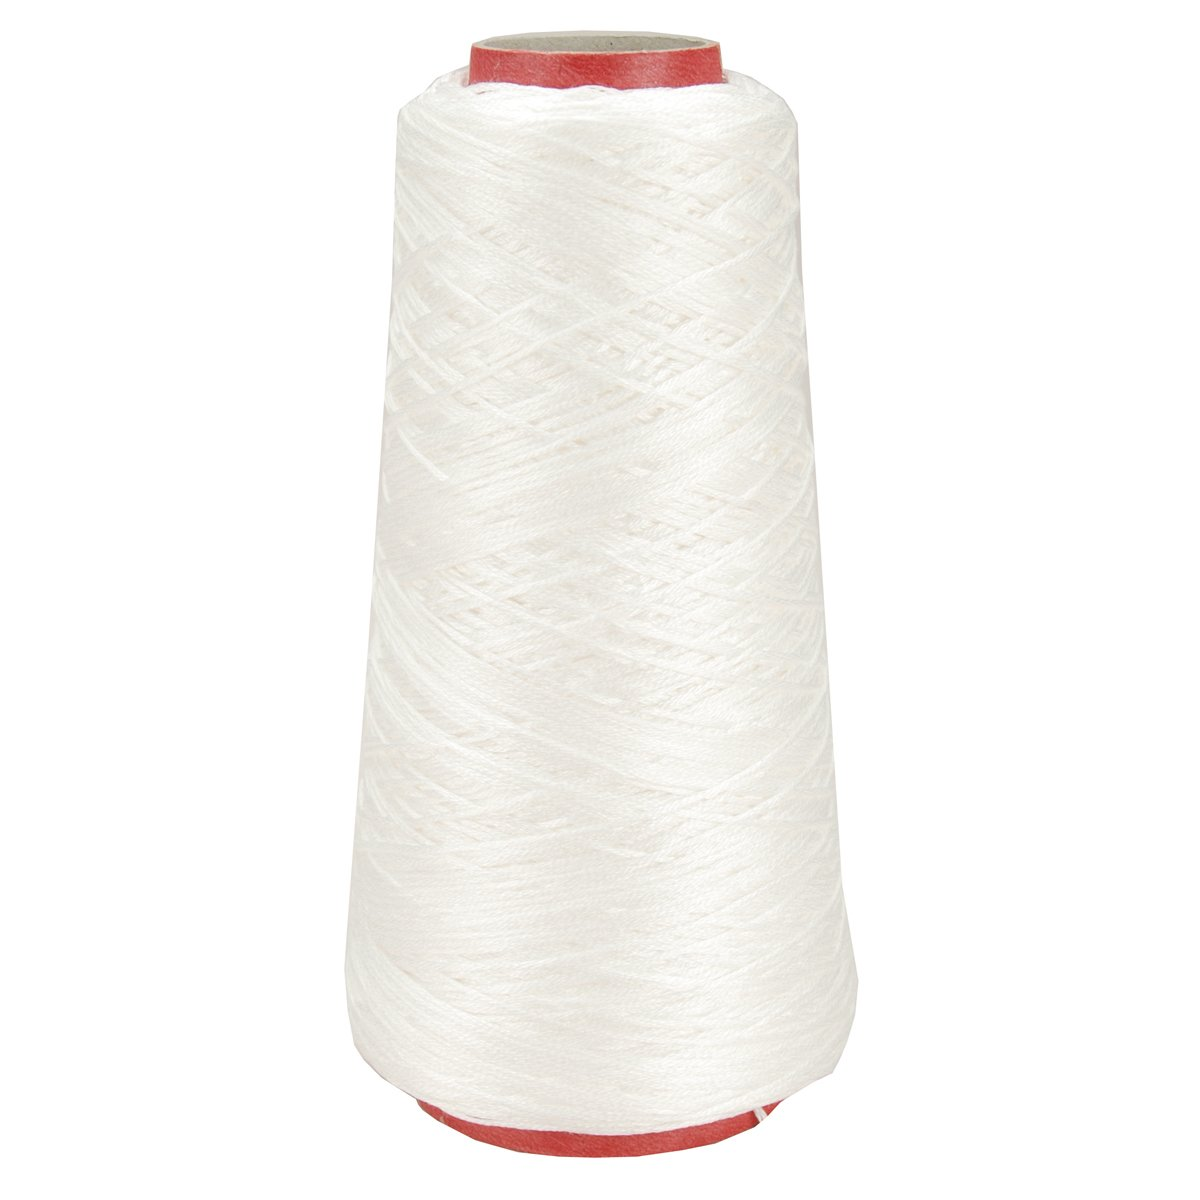 DMC 6-Strand Embroidery Cotton 100g Cone-White DMC: Cone Floss 015267